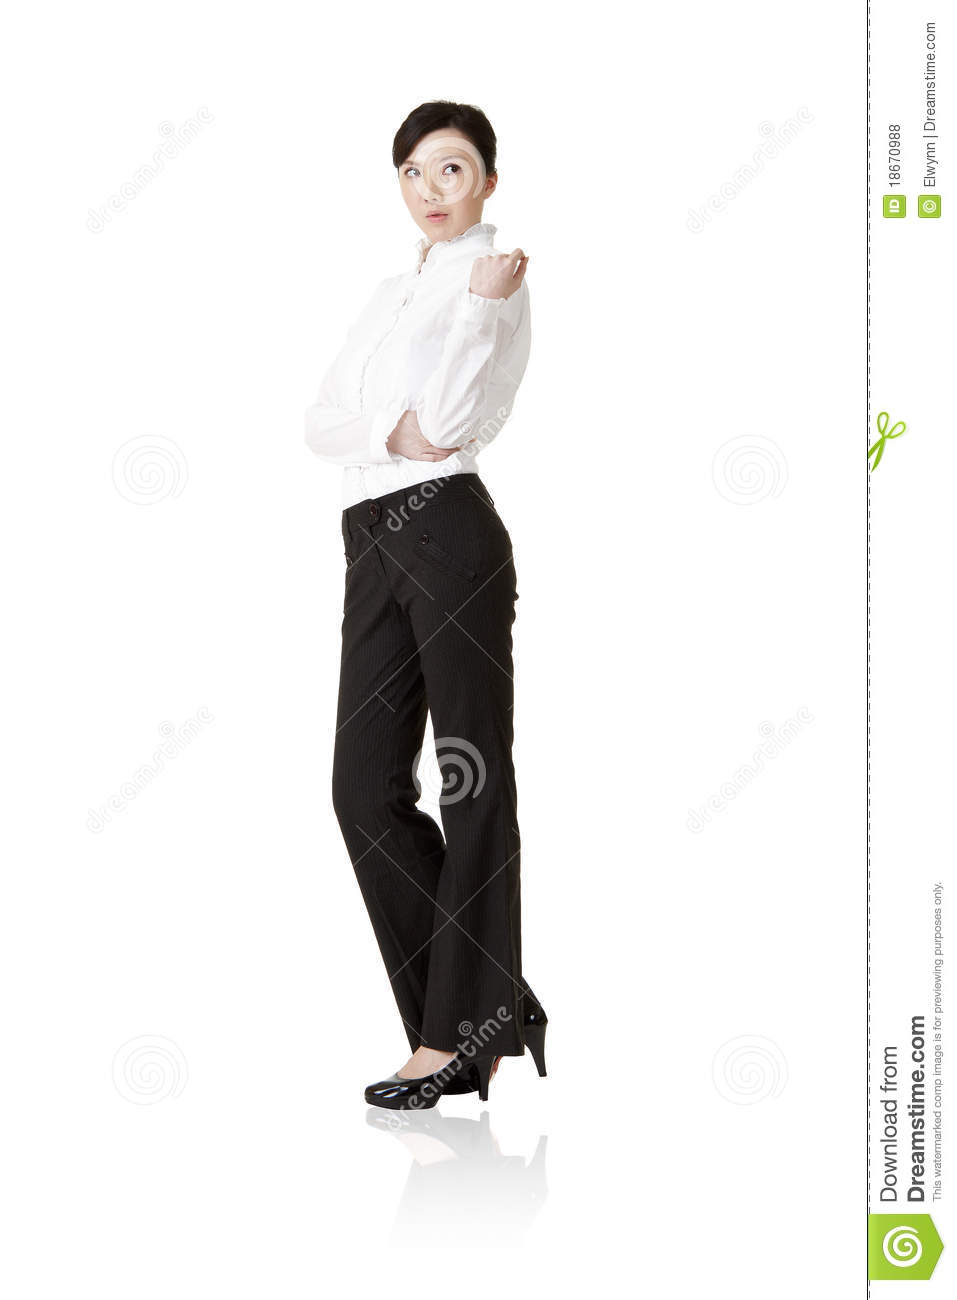 Successful Business Woman Royalty Free Stock Photos ...